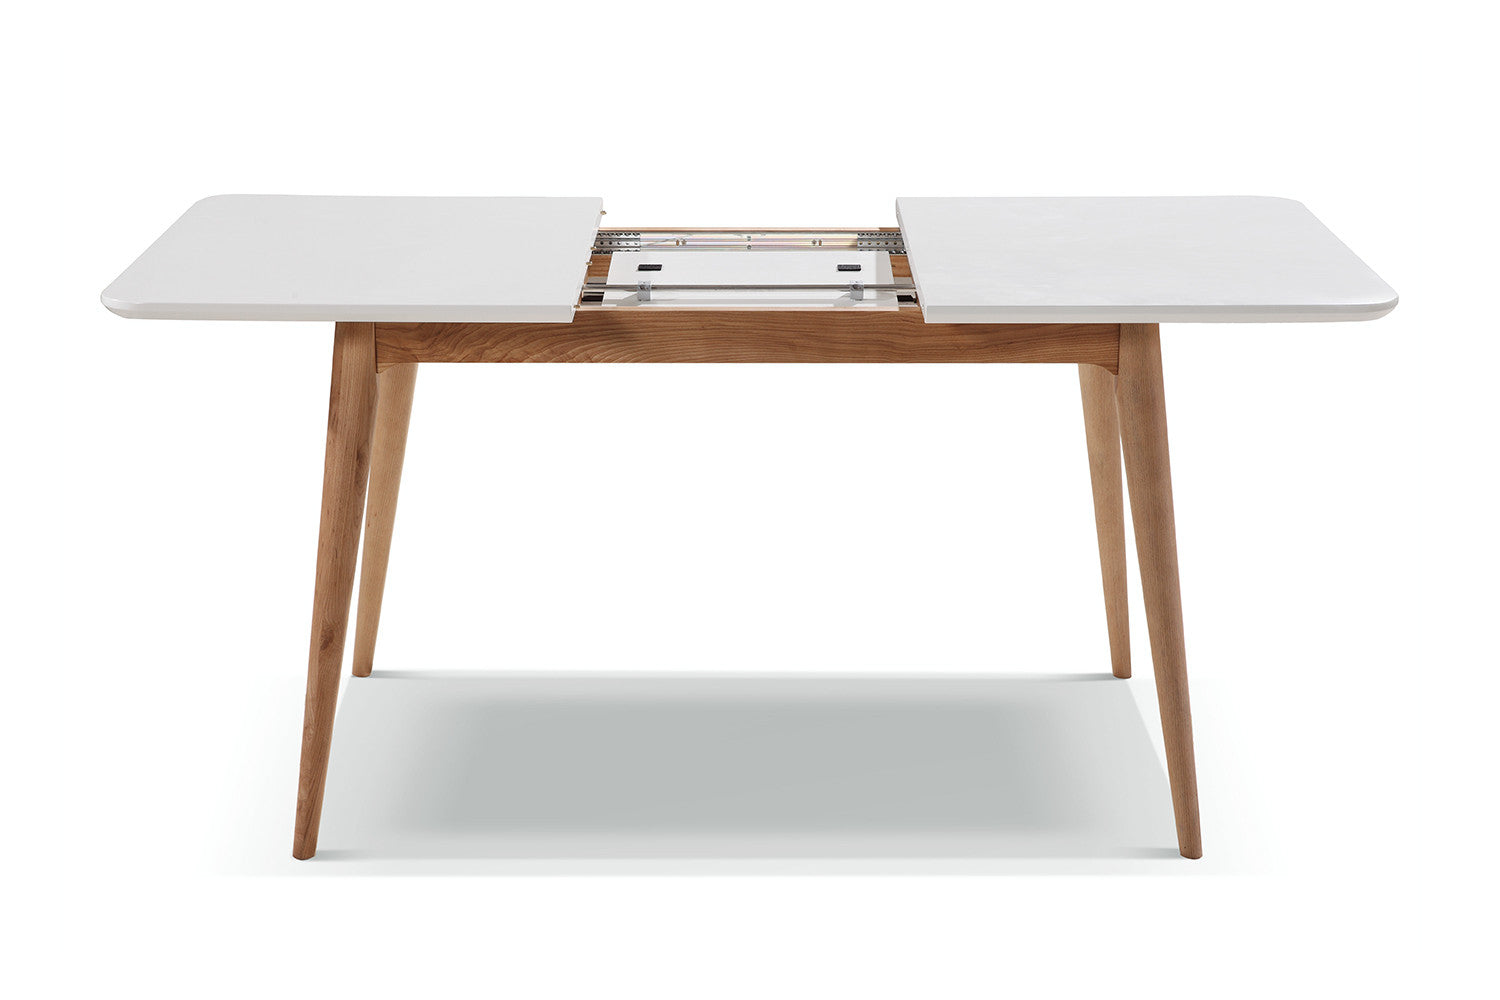 Table de cuisine extensible vintage breggia dewarens - Table a manger a rallonge ...